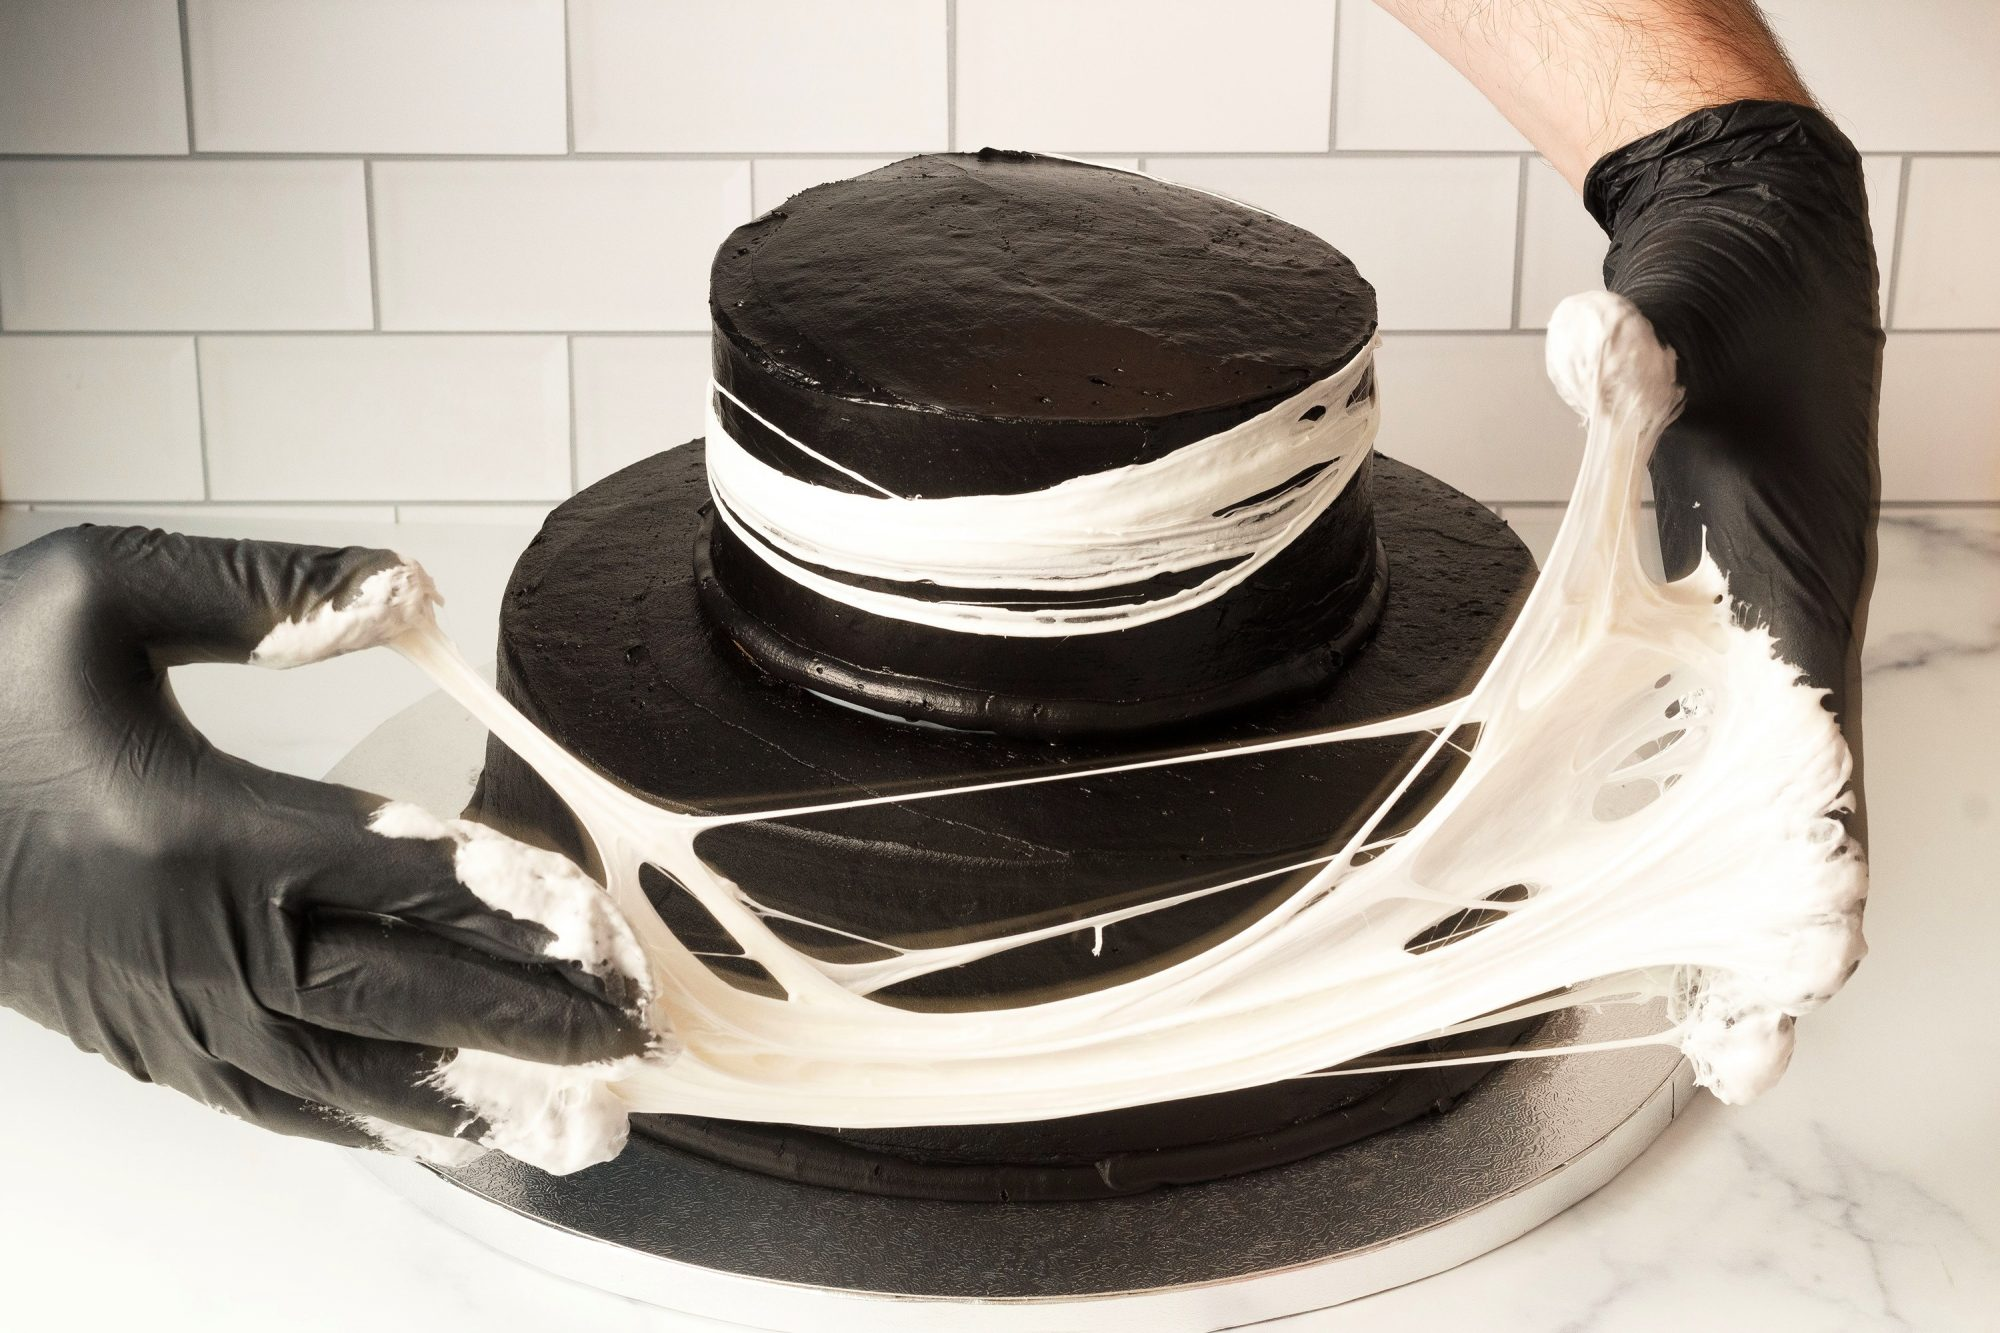 gloved hands stretching melted marshmallow to form a spiderweb decoration on a two-tiered dark chocolate cake for Halloween